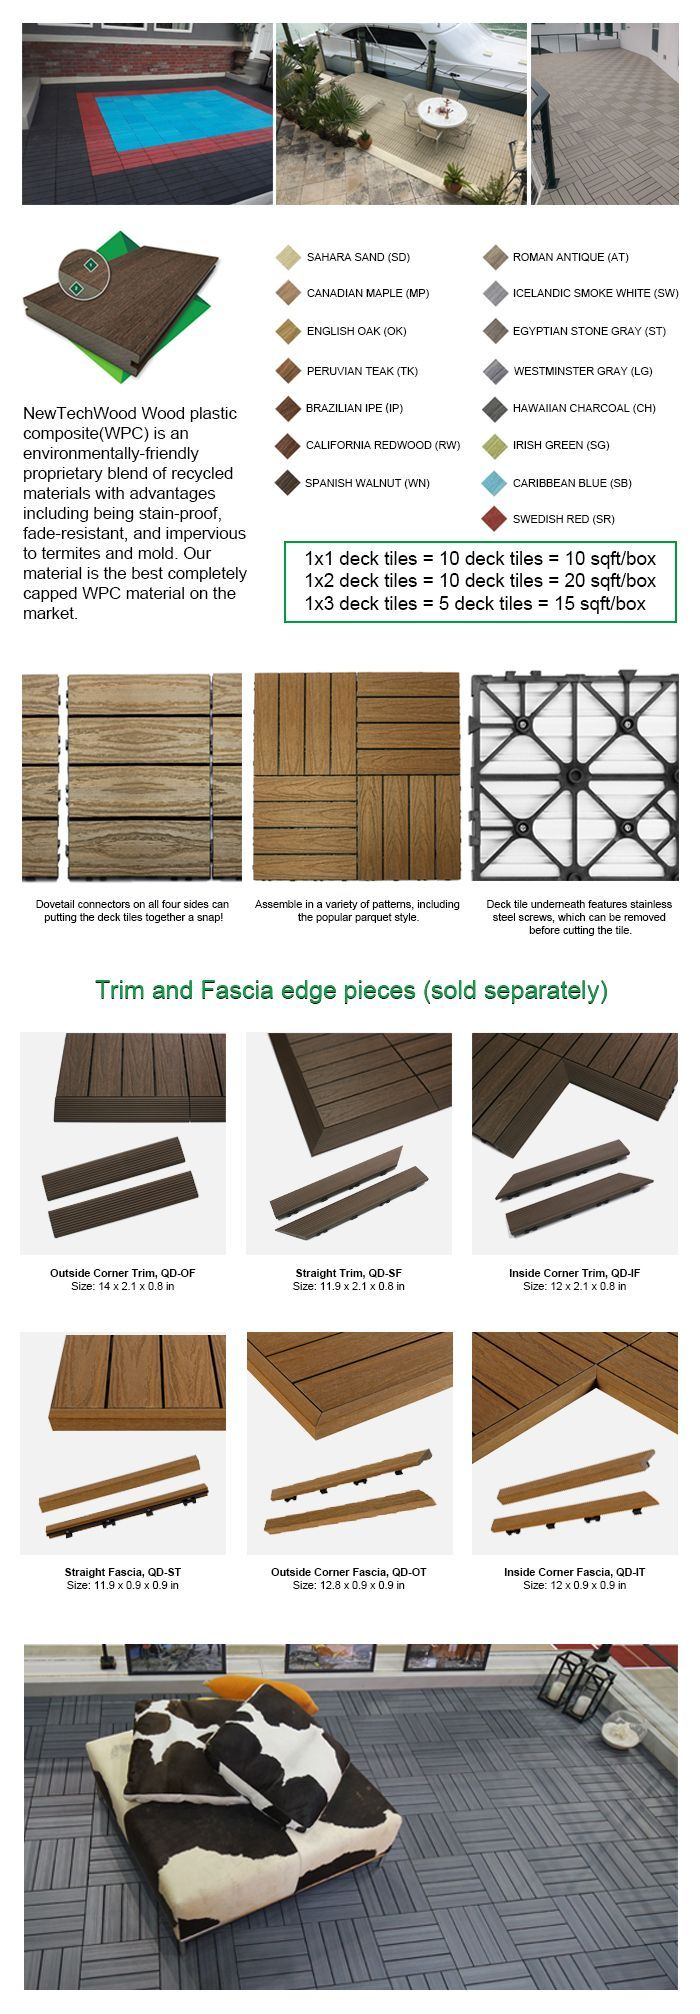 Newtechwood 1 6 Ft X 1 Ft Quick Deck Composite Deck Tile Outside Corner Trim In Roman Antique 2 Pieces Box Us Qd Of Zx At The Home Depot In 2020 Deck Tile Composite Decking Building A Deck